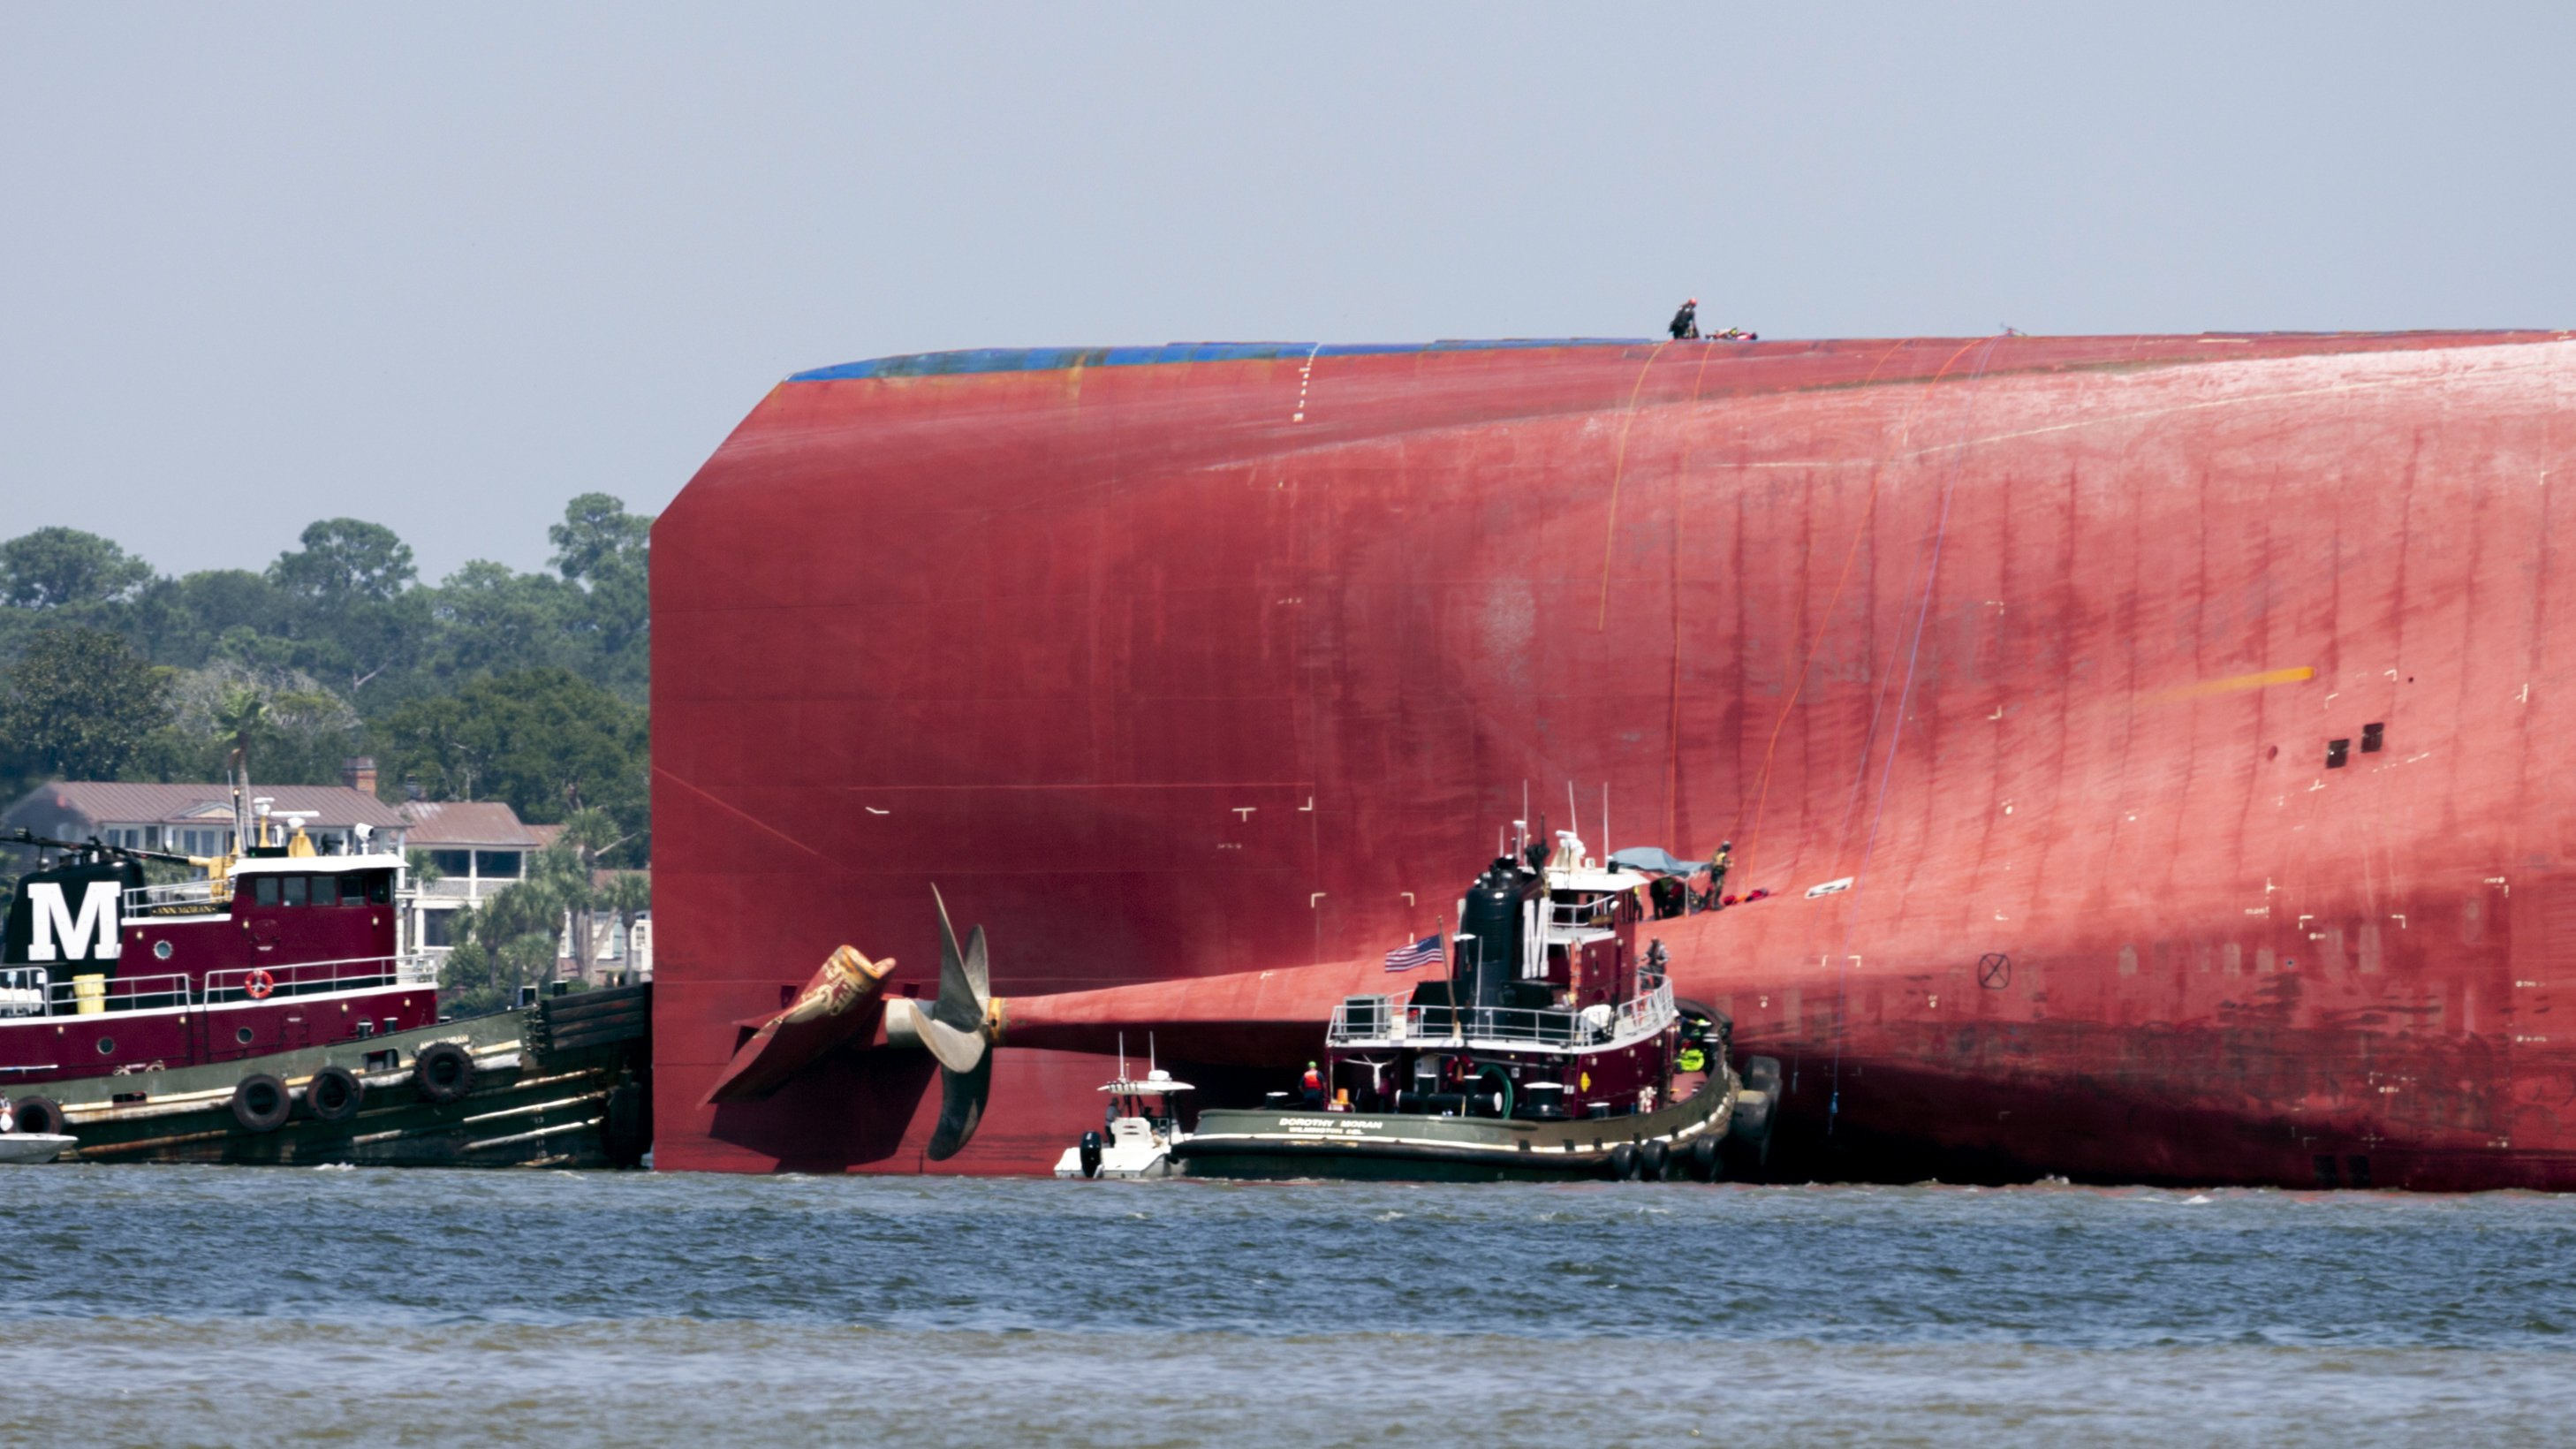 Fourth and final crewman pulled alive from capsized ship